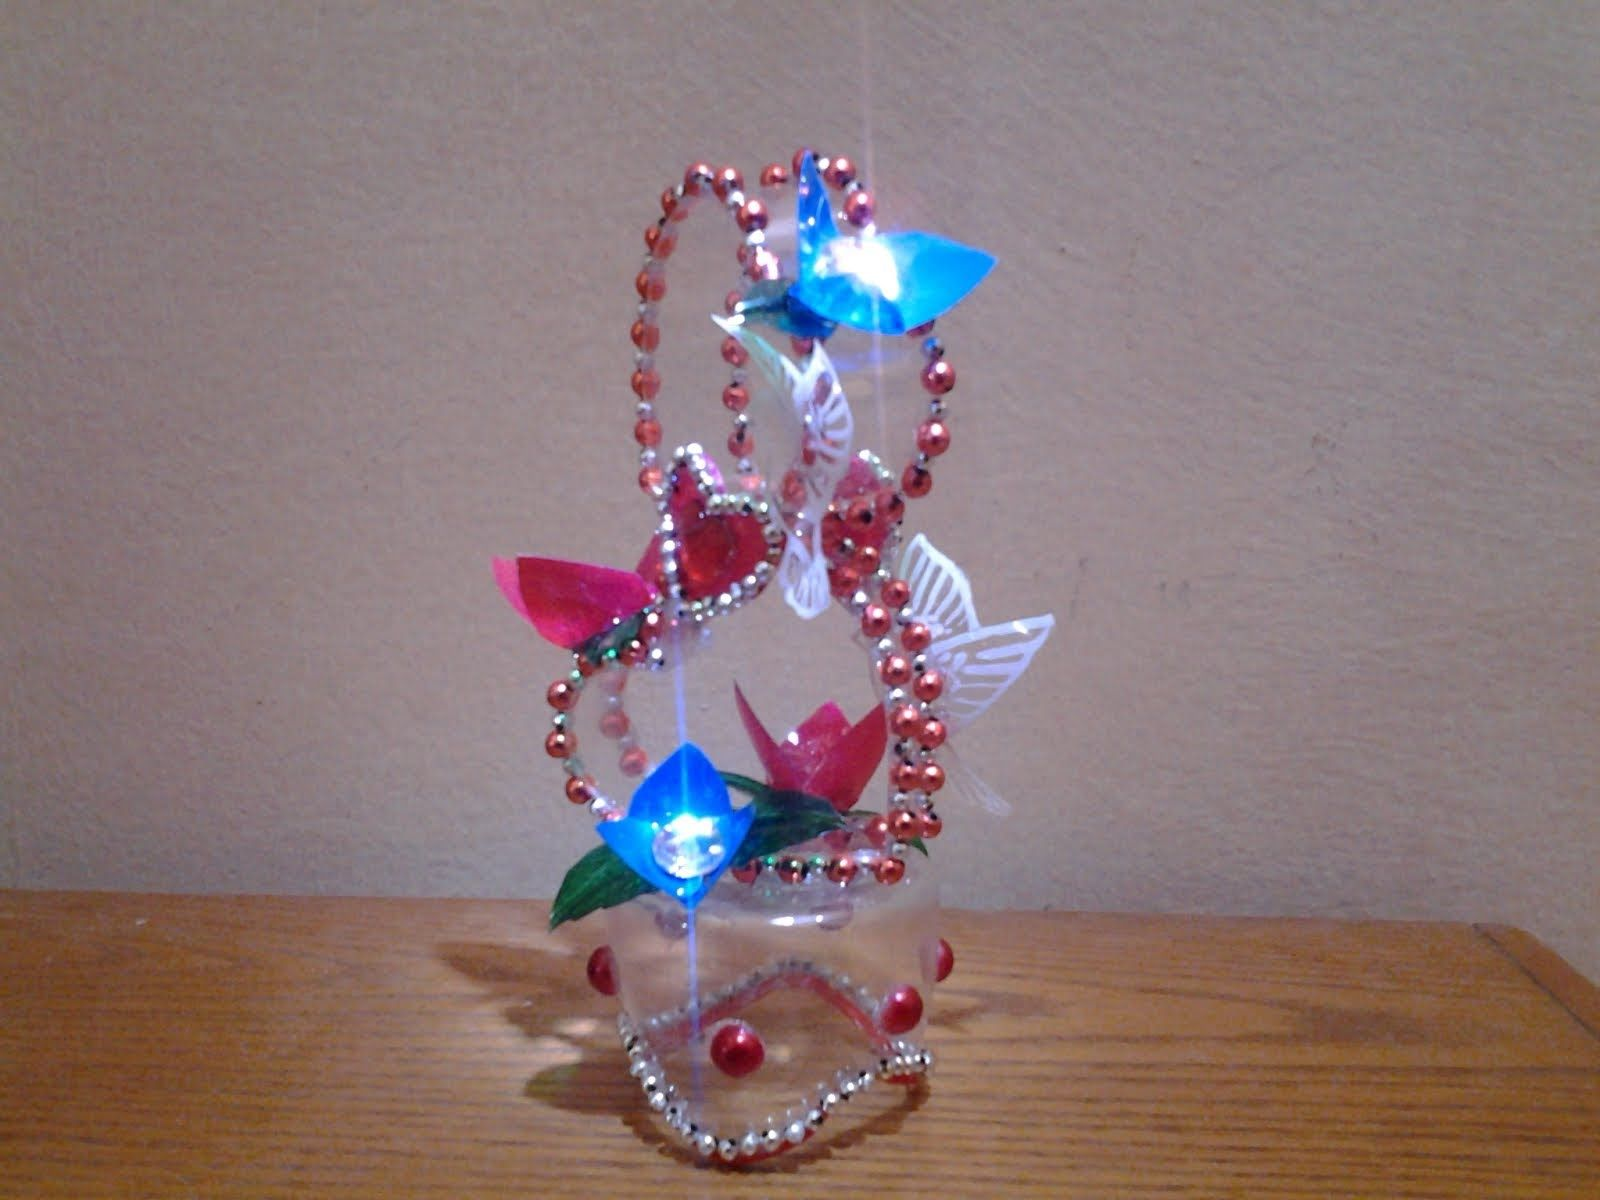 Best out of waste plastic bottle transformed to lovely for Craft model with waste material